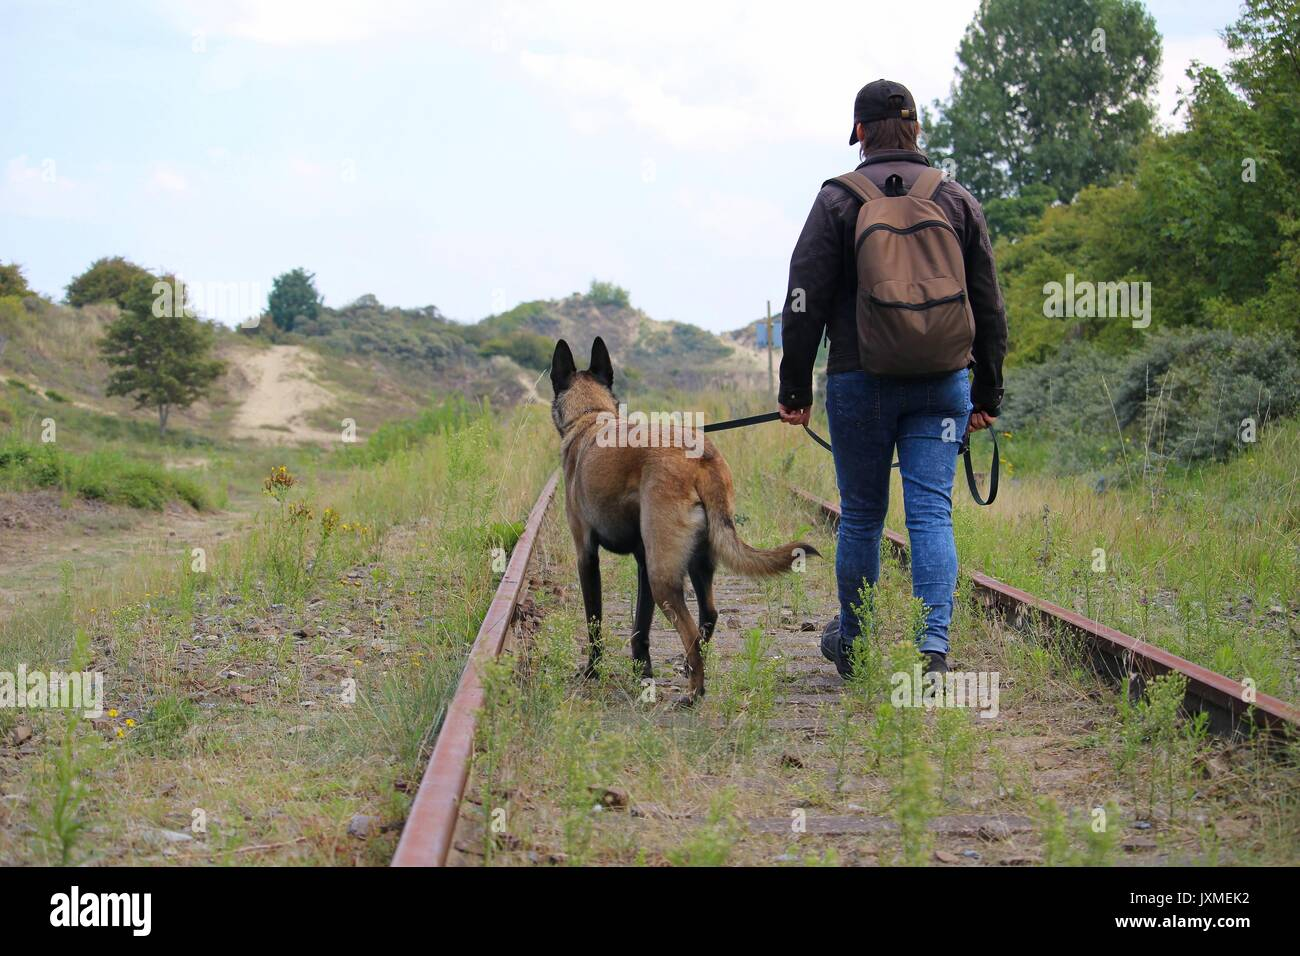 A master and his dog on a walk along the rails near the dunes - Stock Image